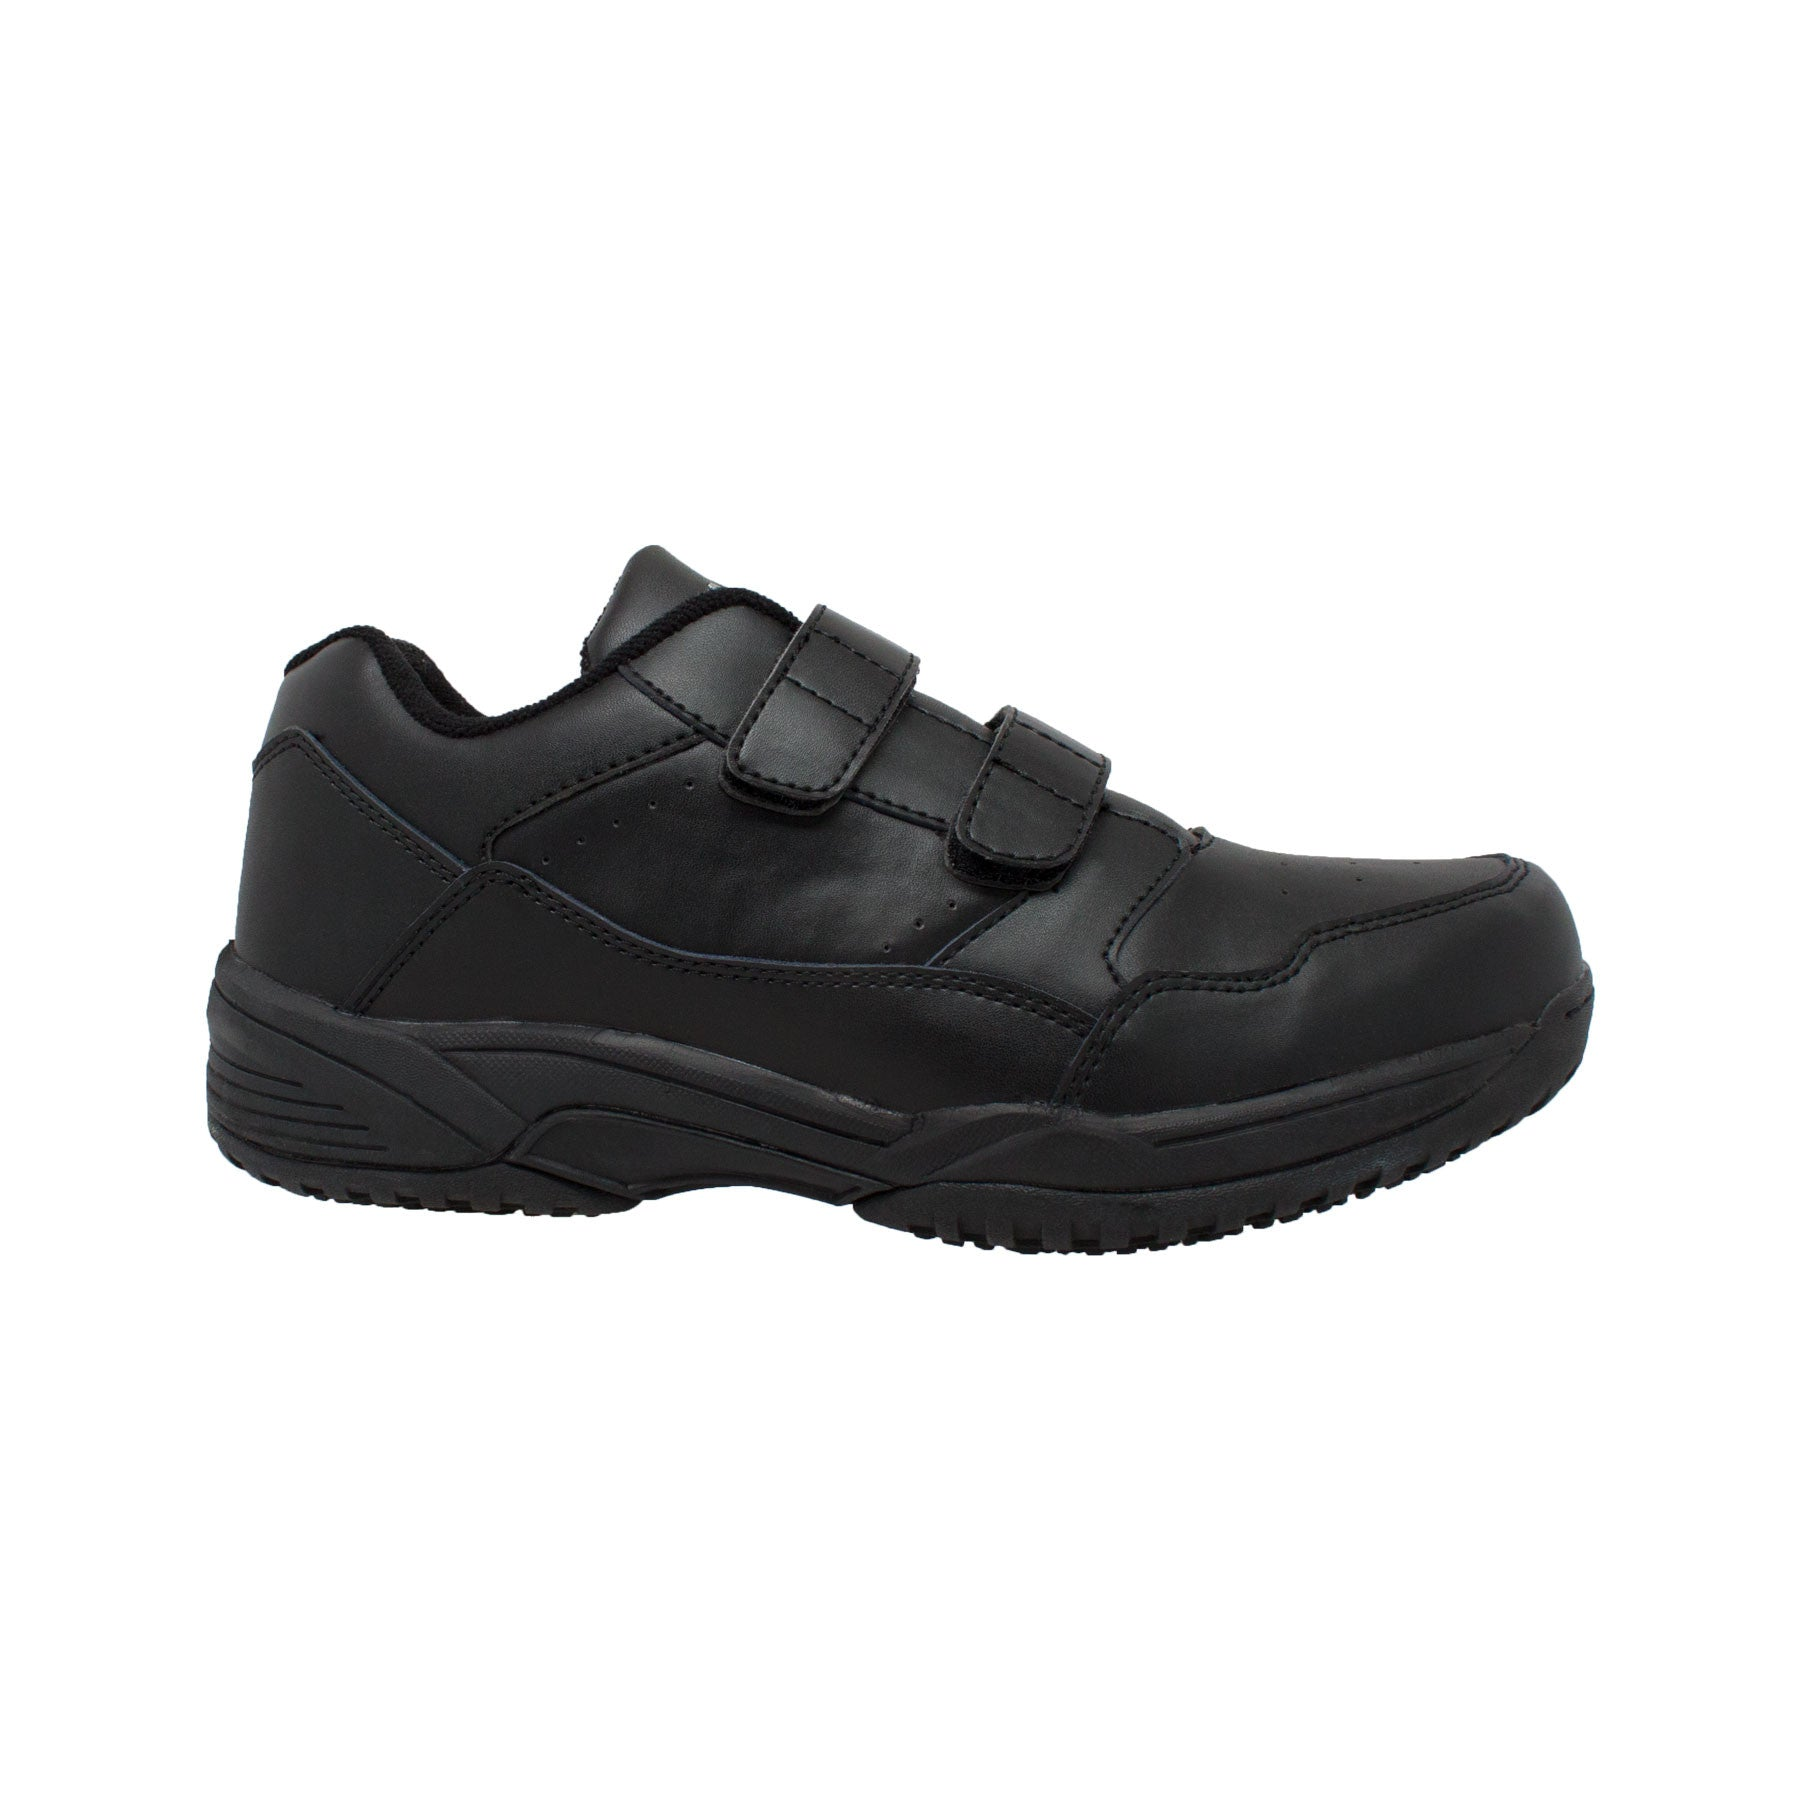 Men's Uniform Athletic Velcro Black - 9635 - Shop Genuine Leather men & women's boots online | AdTecFootWear